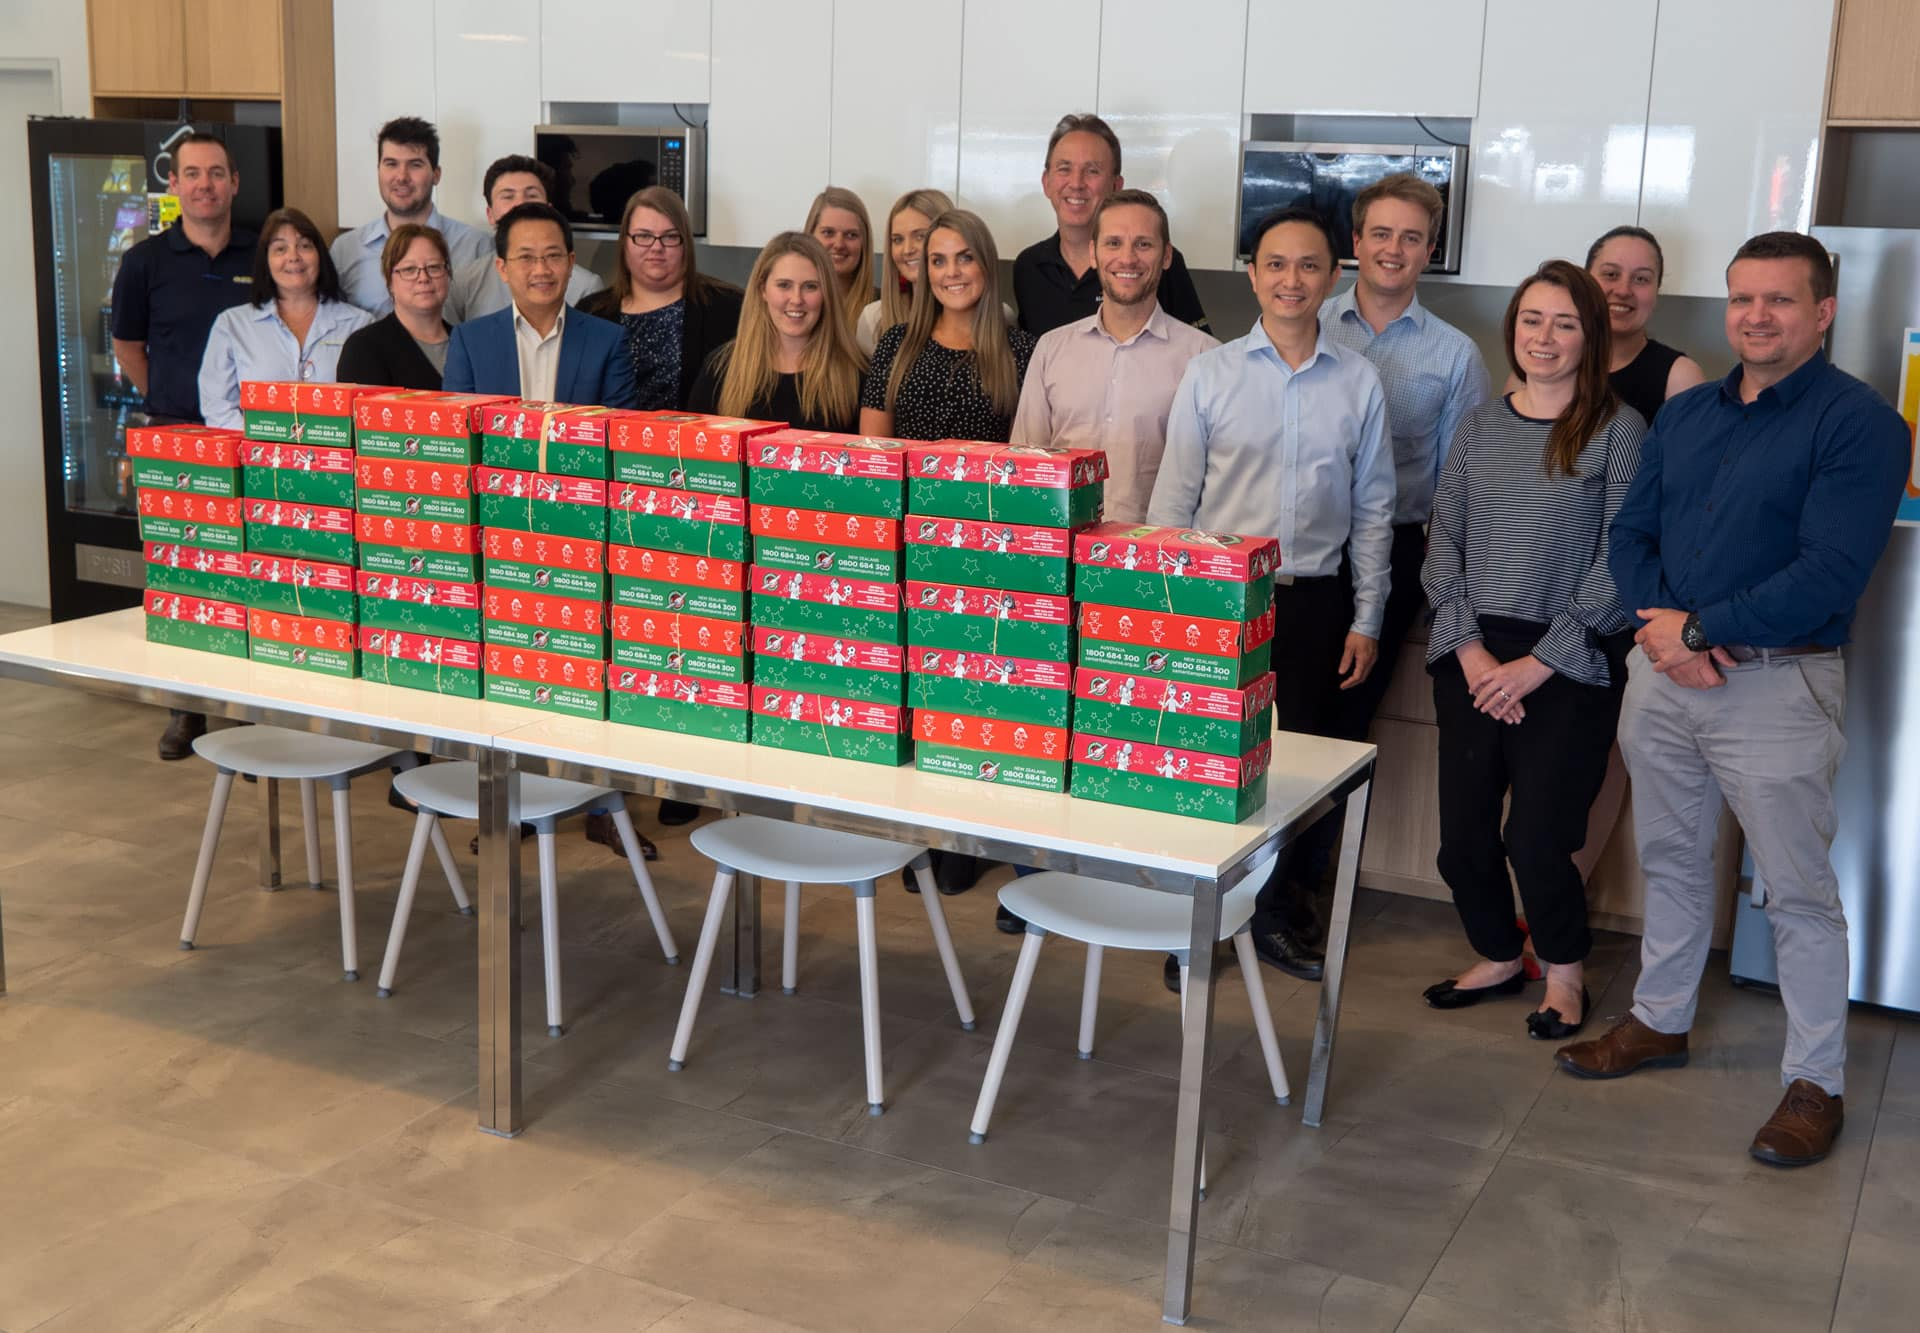 AOL gets into Christmas spirit - Staff from Australian Outdoor Living with their Operation Christmas shoeboxes, Australian Outdoor Living.